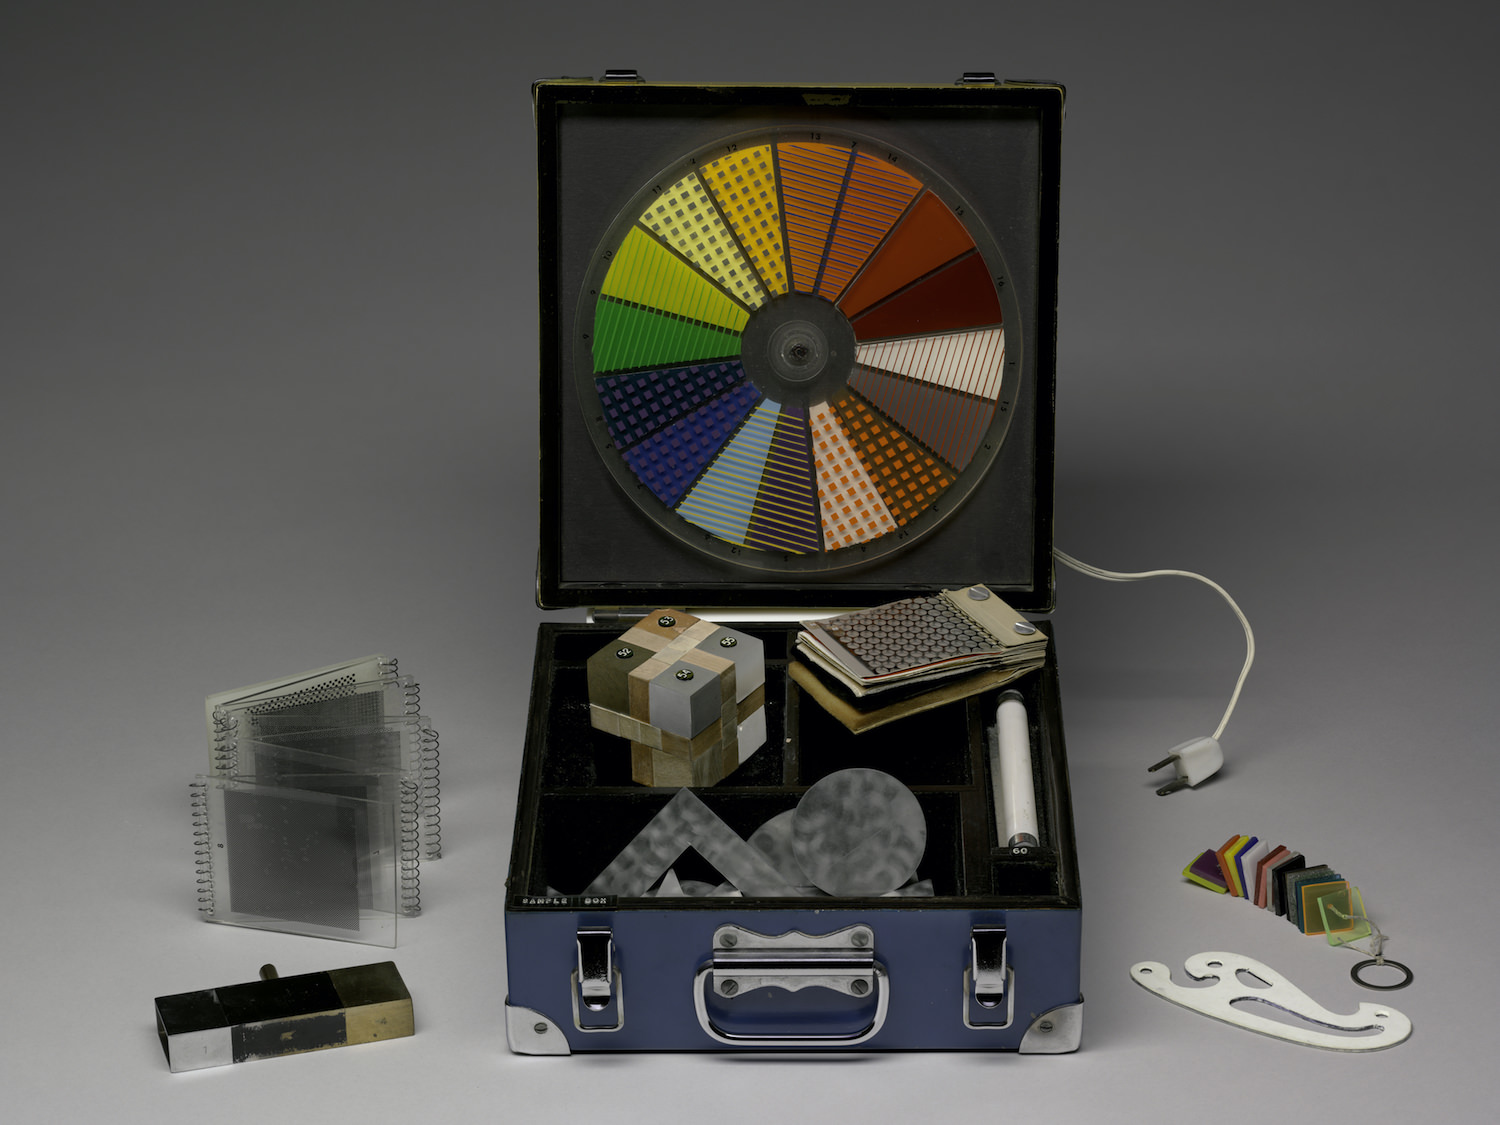 1965, box with mounted Plexiglas wheel and various sample materials, box closed: 11.1 x. 25.4 x 27 cm. Harvard Art Museums/Fogg Museum, Gift of The Collection of John and Kimiko Powers, 1977.16.1